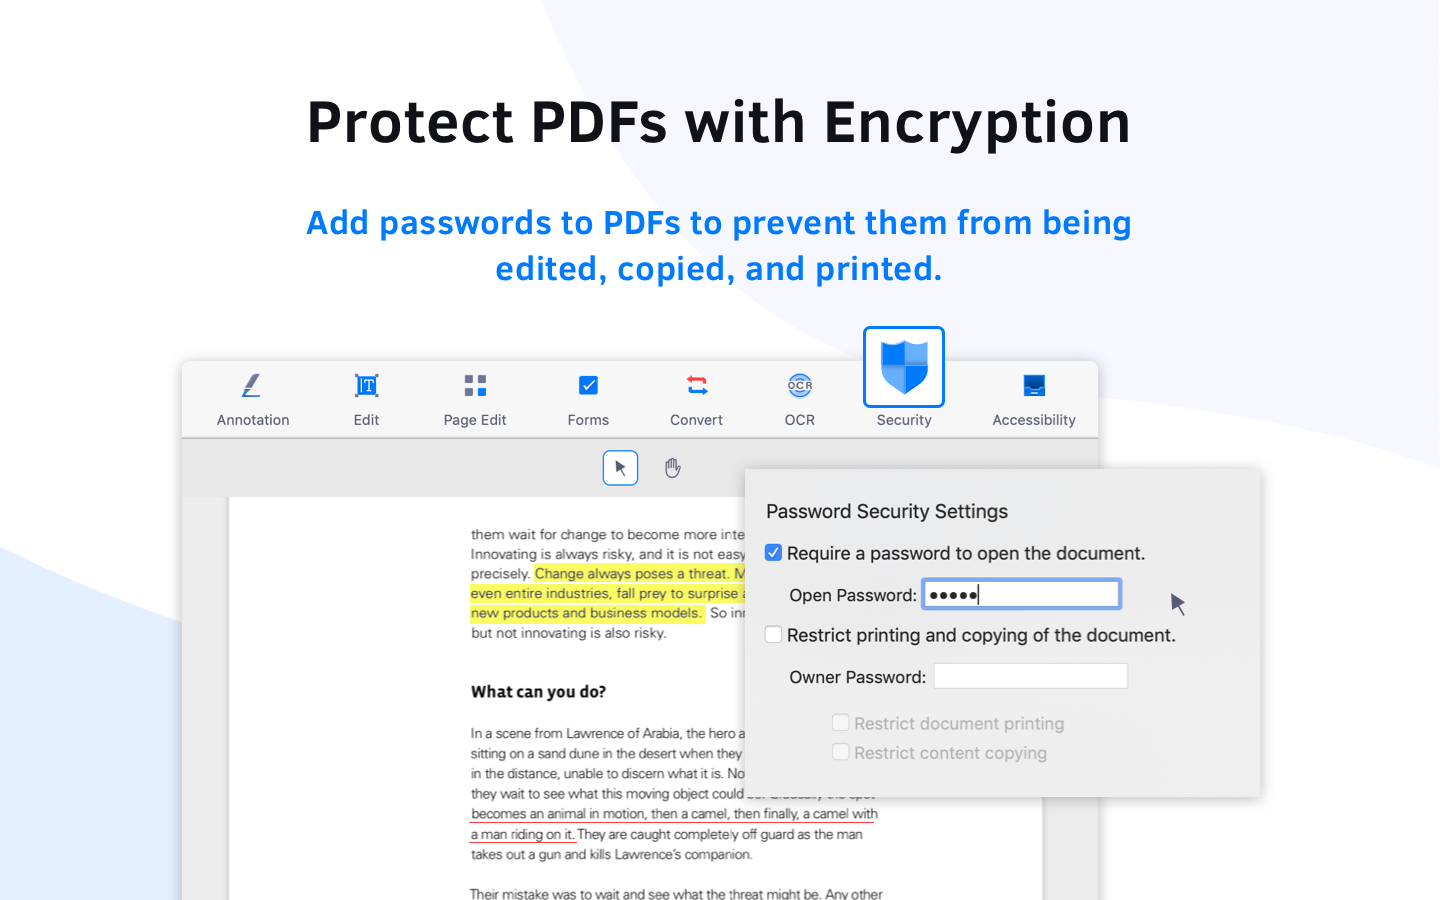 Protect PDF with encryption